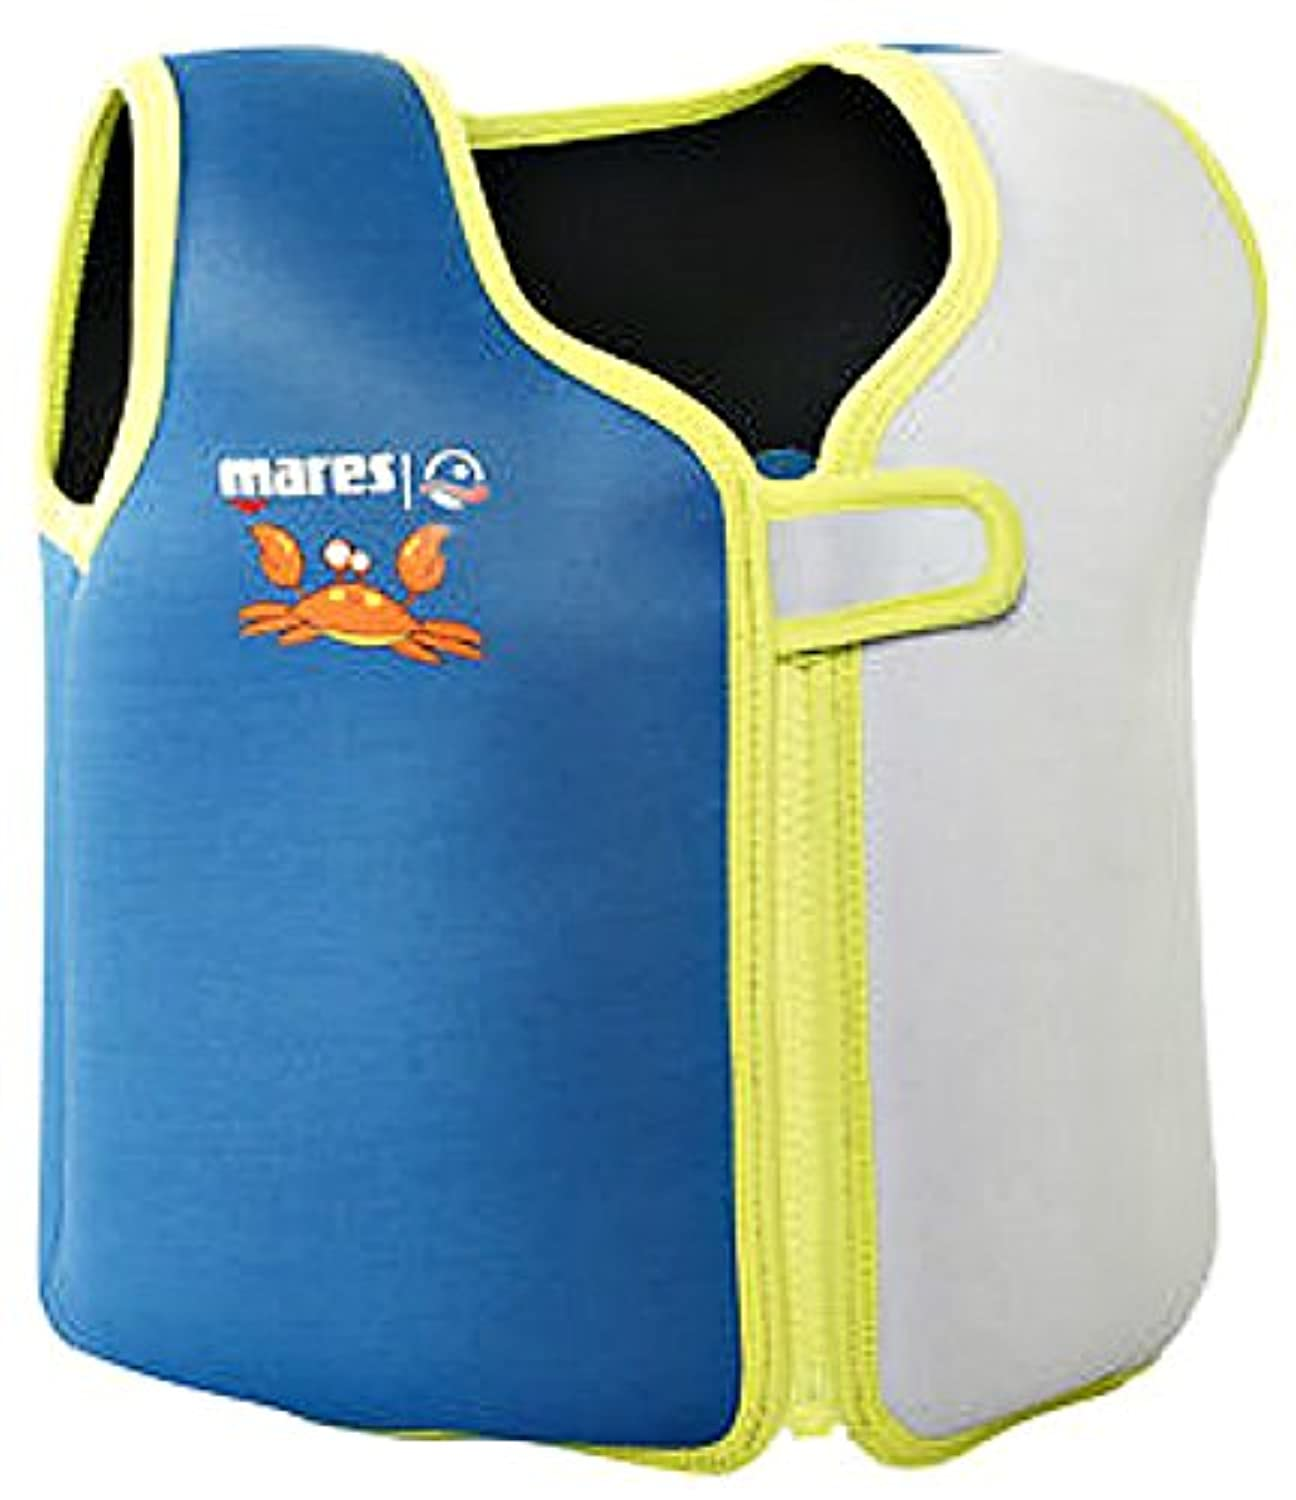 Mares Childs / Junior Floatation Swim Vest /ジャケット。ブルー/グレー。年齢2 – 4 years. by Mares